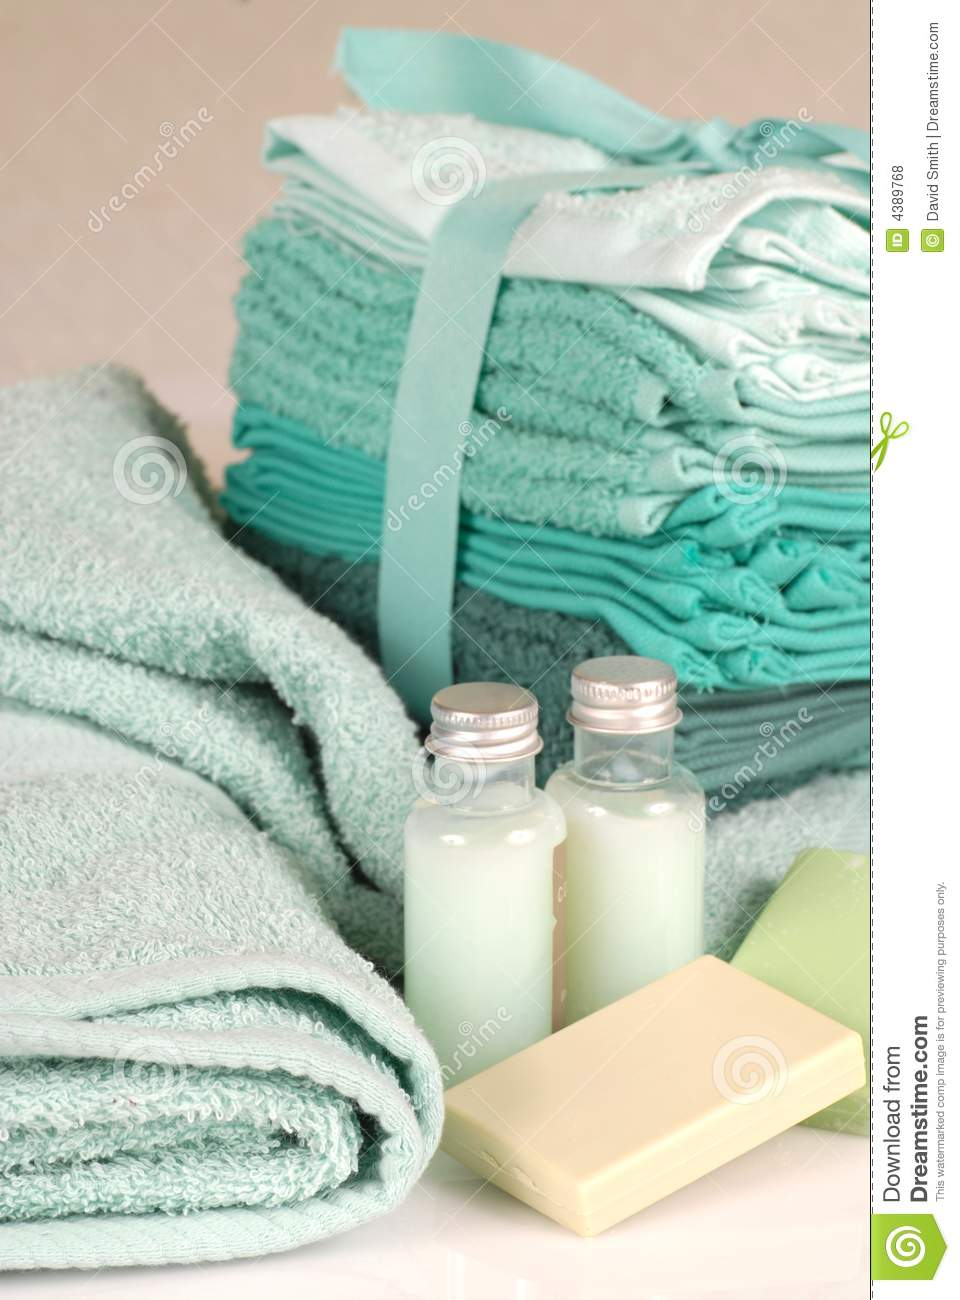 Green towels with soap and shampoo